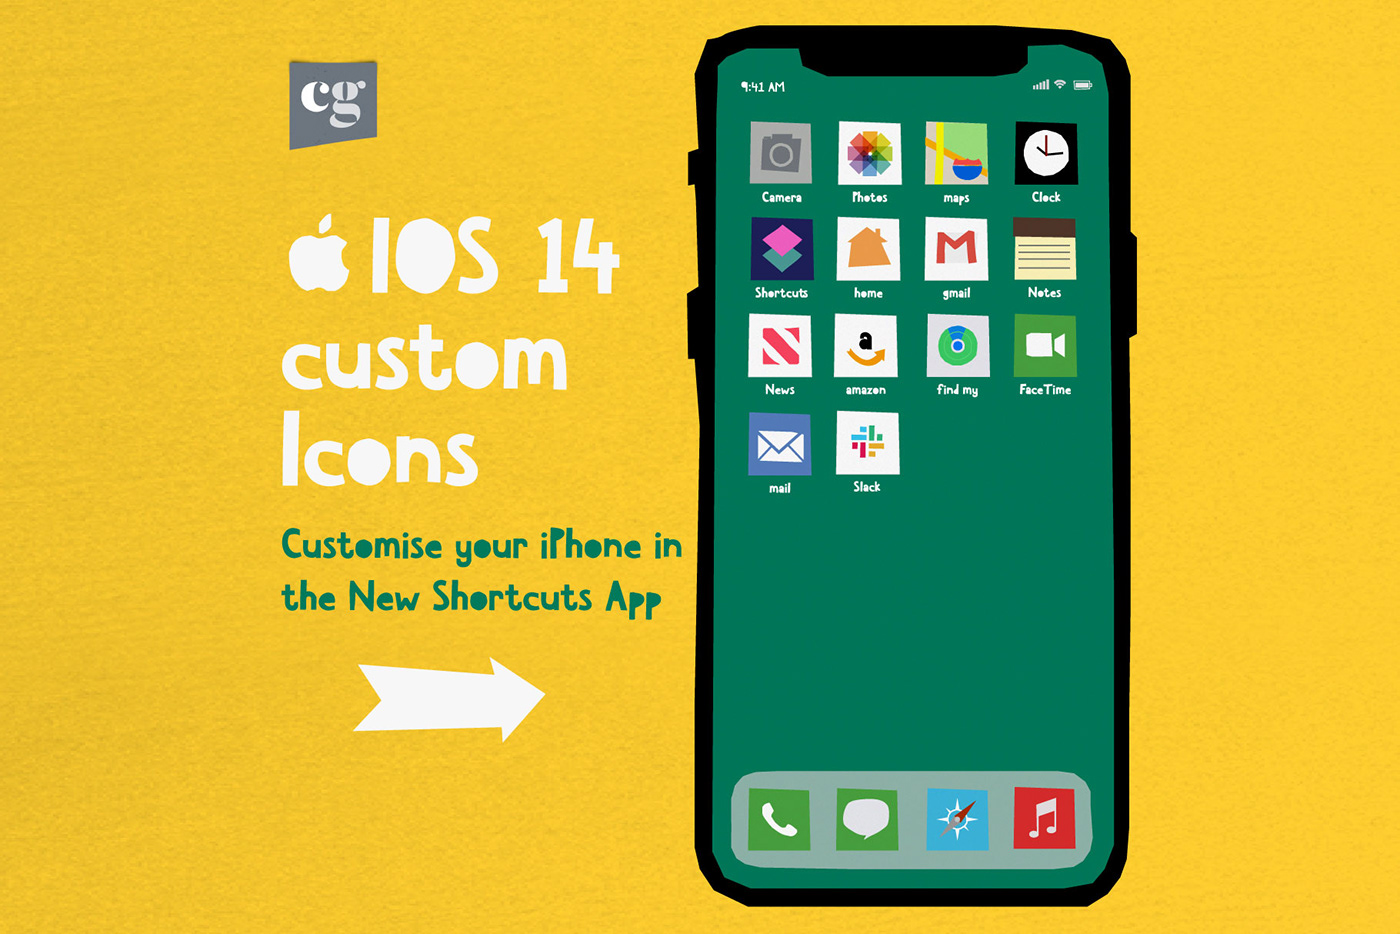 iOS 14 custom icons - customize your iPhon in the New Shortcuts App